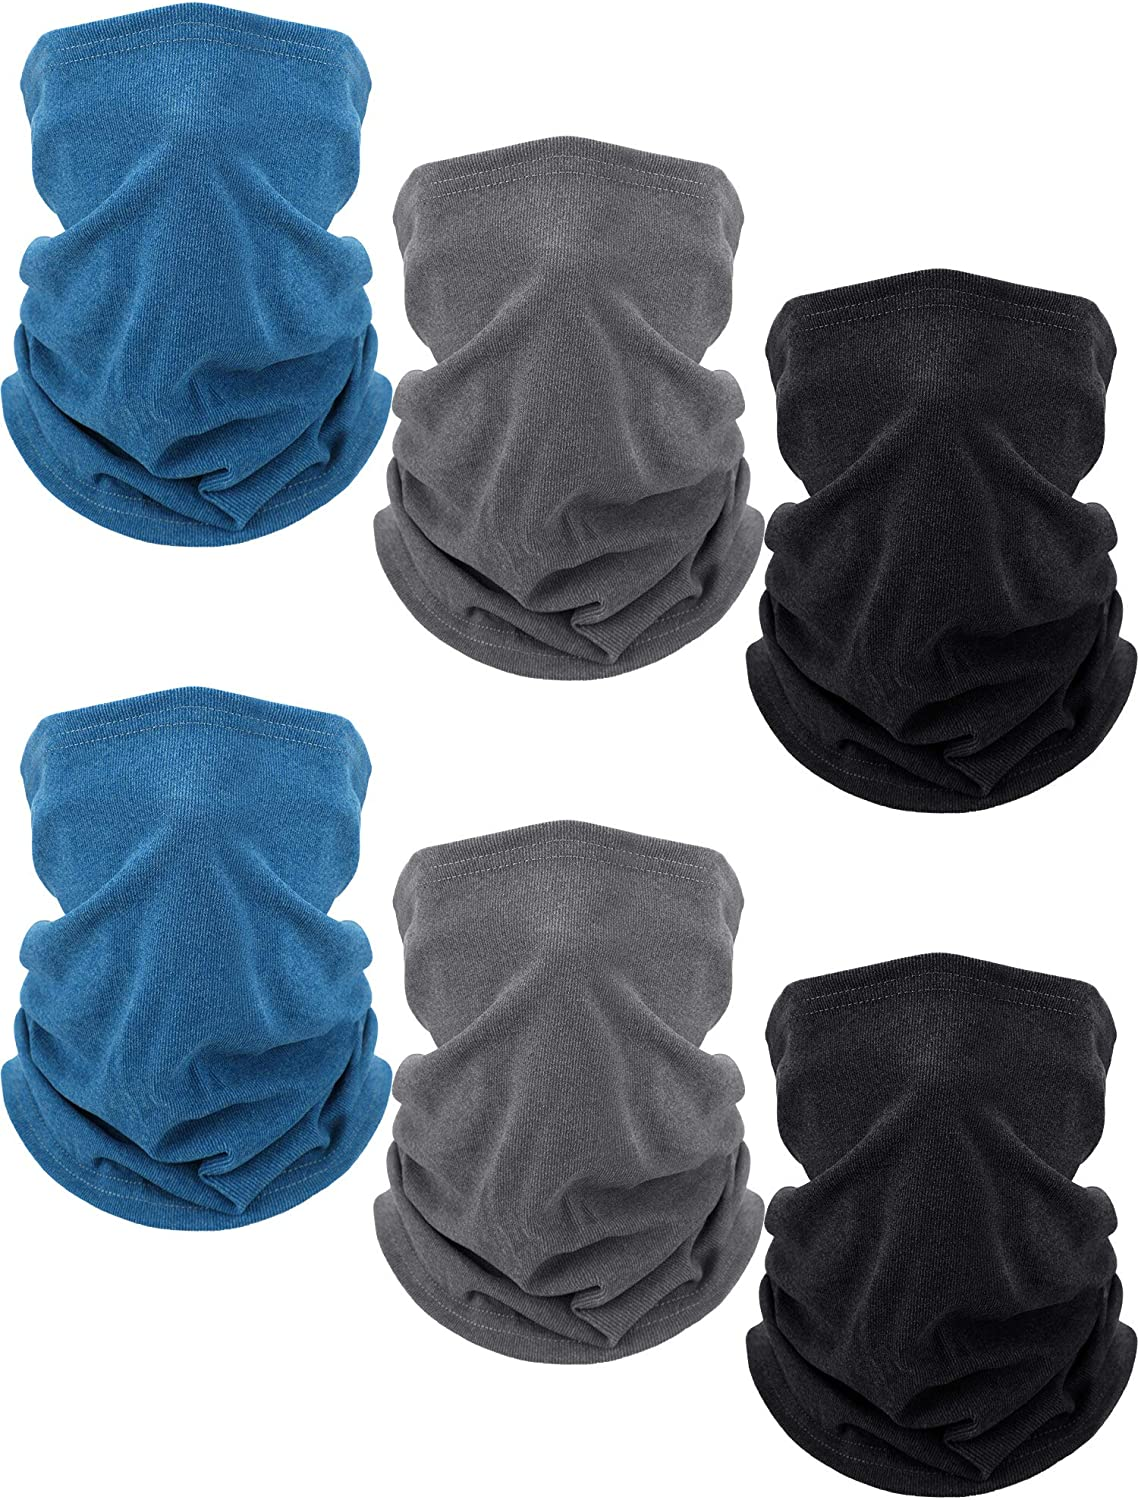 Boyiee 6 Pieces Fleece Neck Gaiter Warmer Thermal Neck Gaiter Unisex Ski Tube Scarf Cold Weather Face Neck Covering (Grey, Navy Blue and Black)